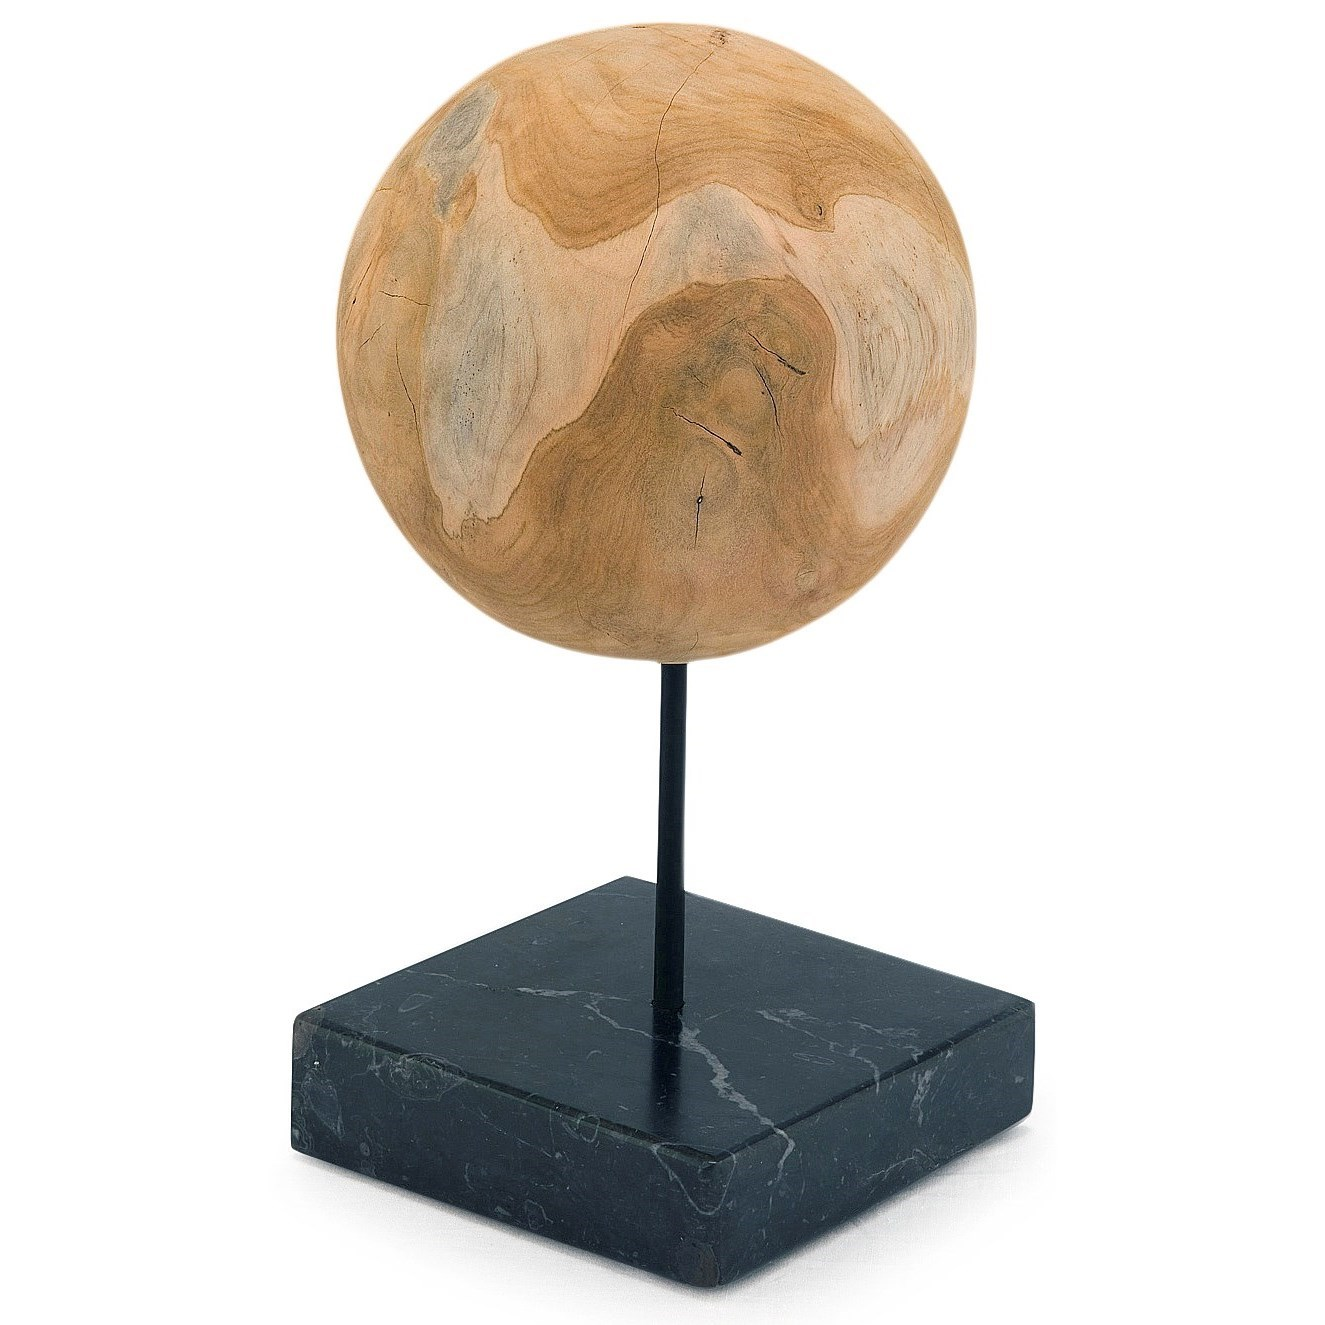 Sculptures Round Teak Ball On Black Marble Base Medium by Moe's Home Collection at Stoney Creek Furniture